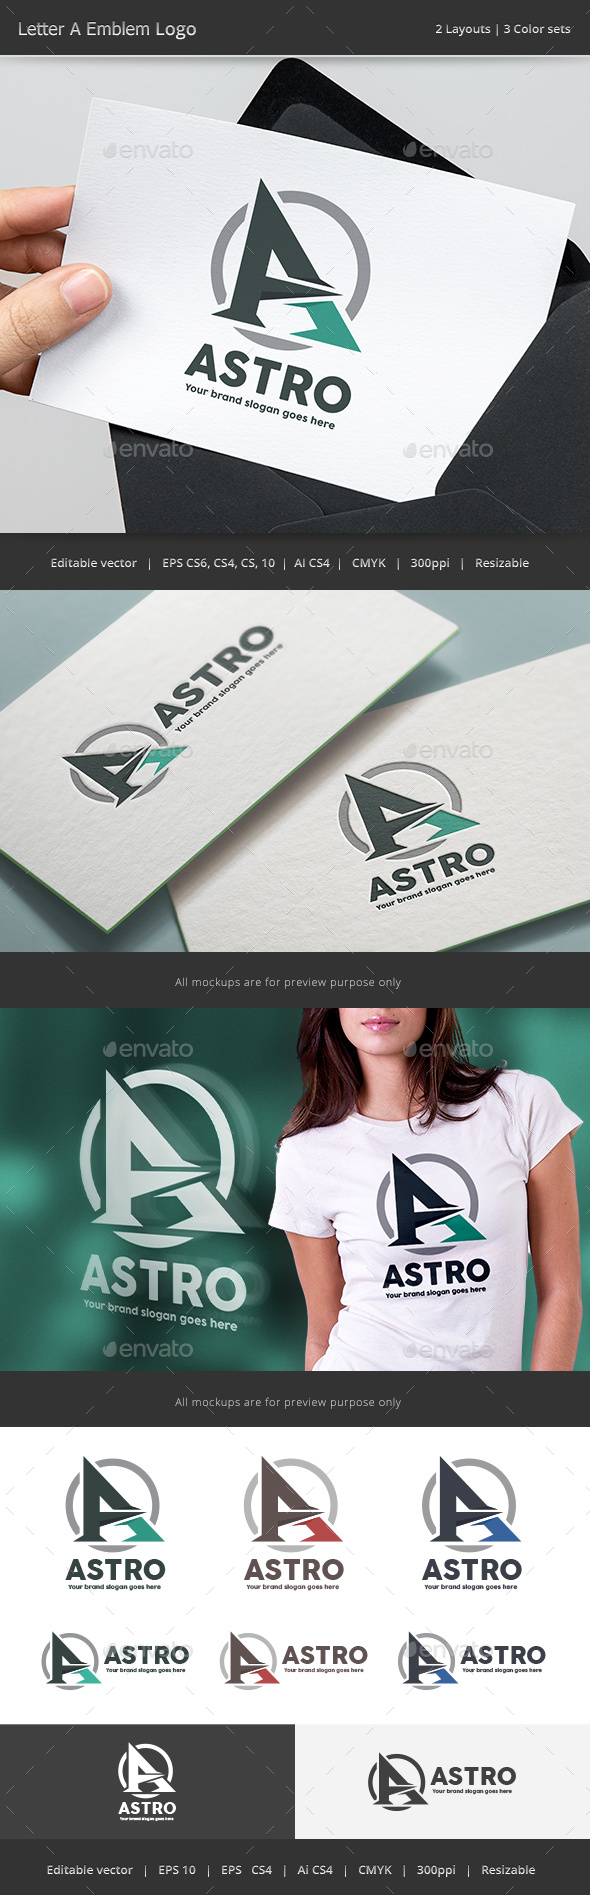 Astro Letter A Emblem Logo - Vector Abstract